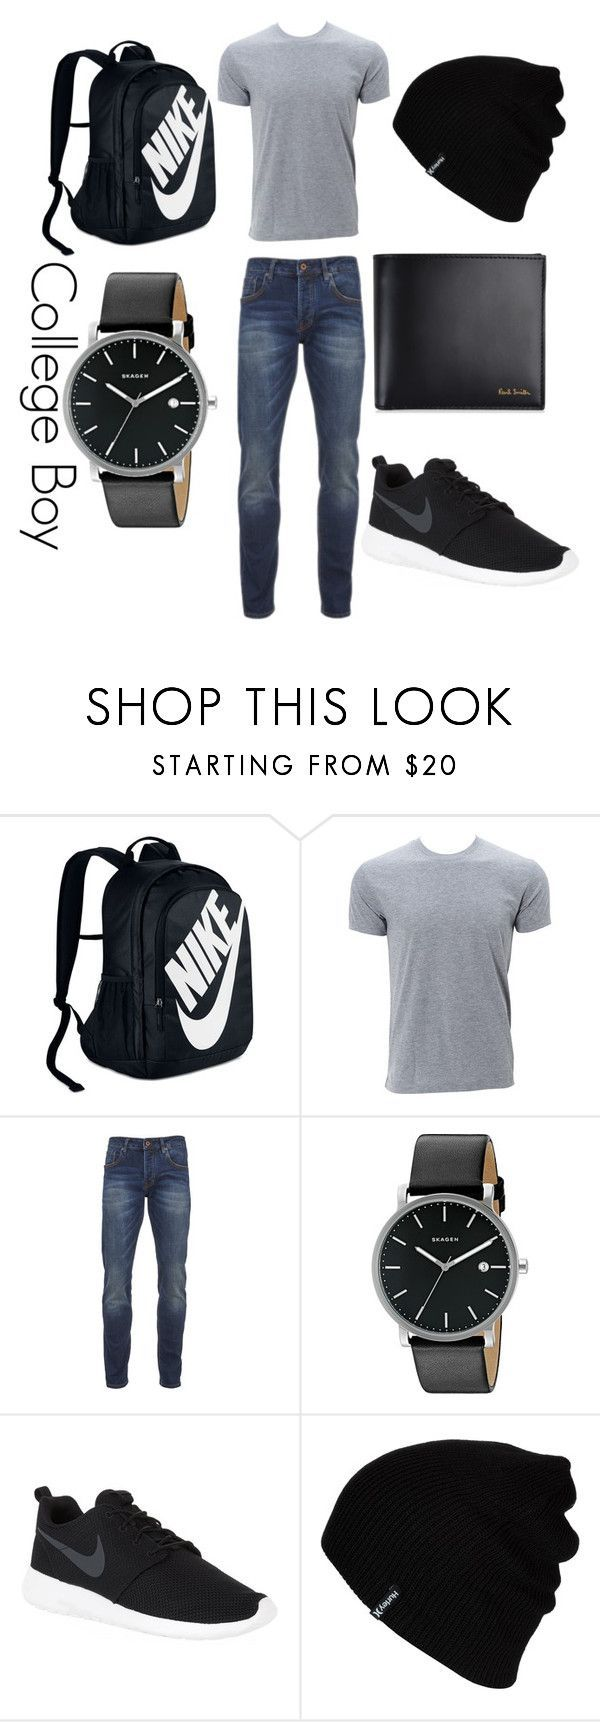 """College Boy"" by magriatrix ❤ liked on Polyvore featuring NIKE, Scotch & Soda, Skagen, Hurley, Paul Smith, men's fashion and menswear"